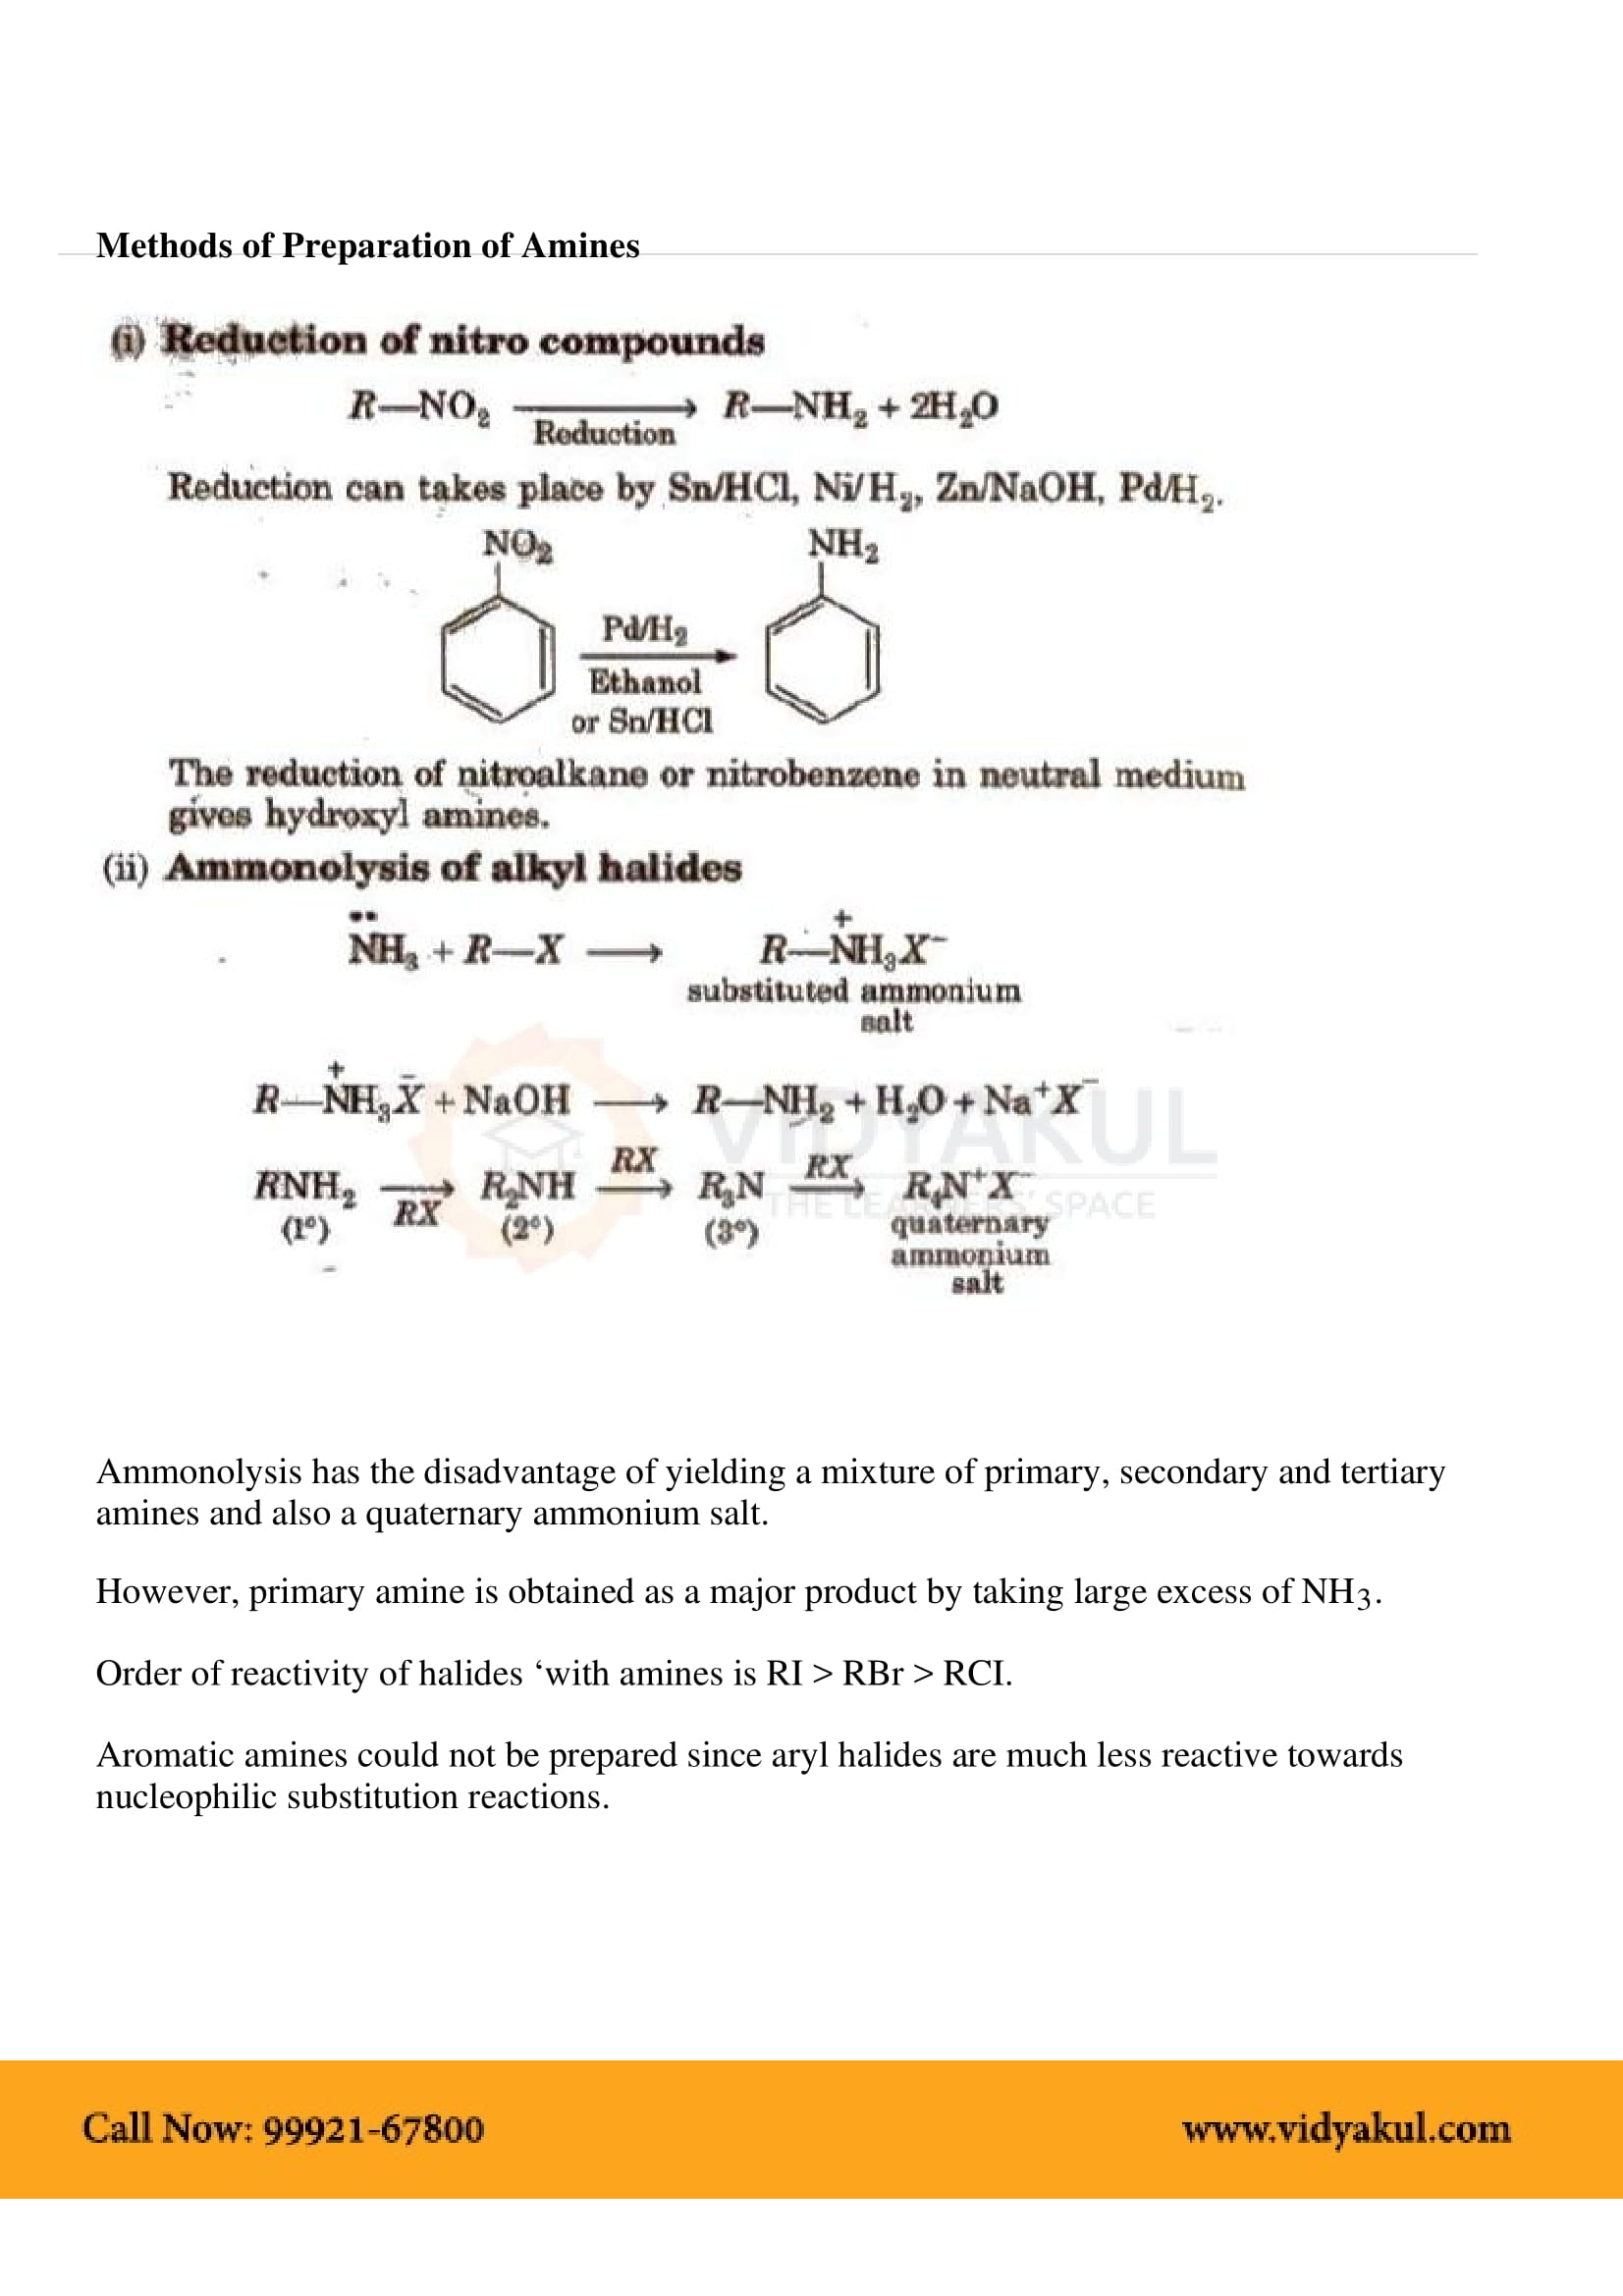 Organic Compounds Containing Nitrogen Class 12 Notes | Vidyakul